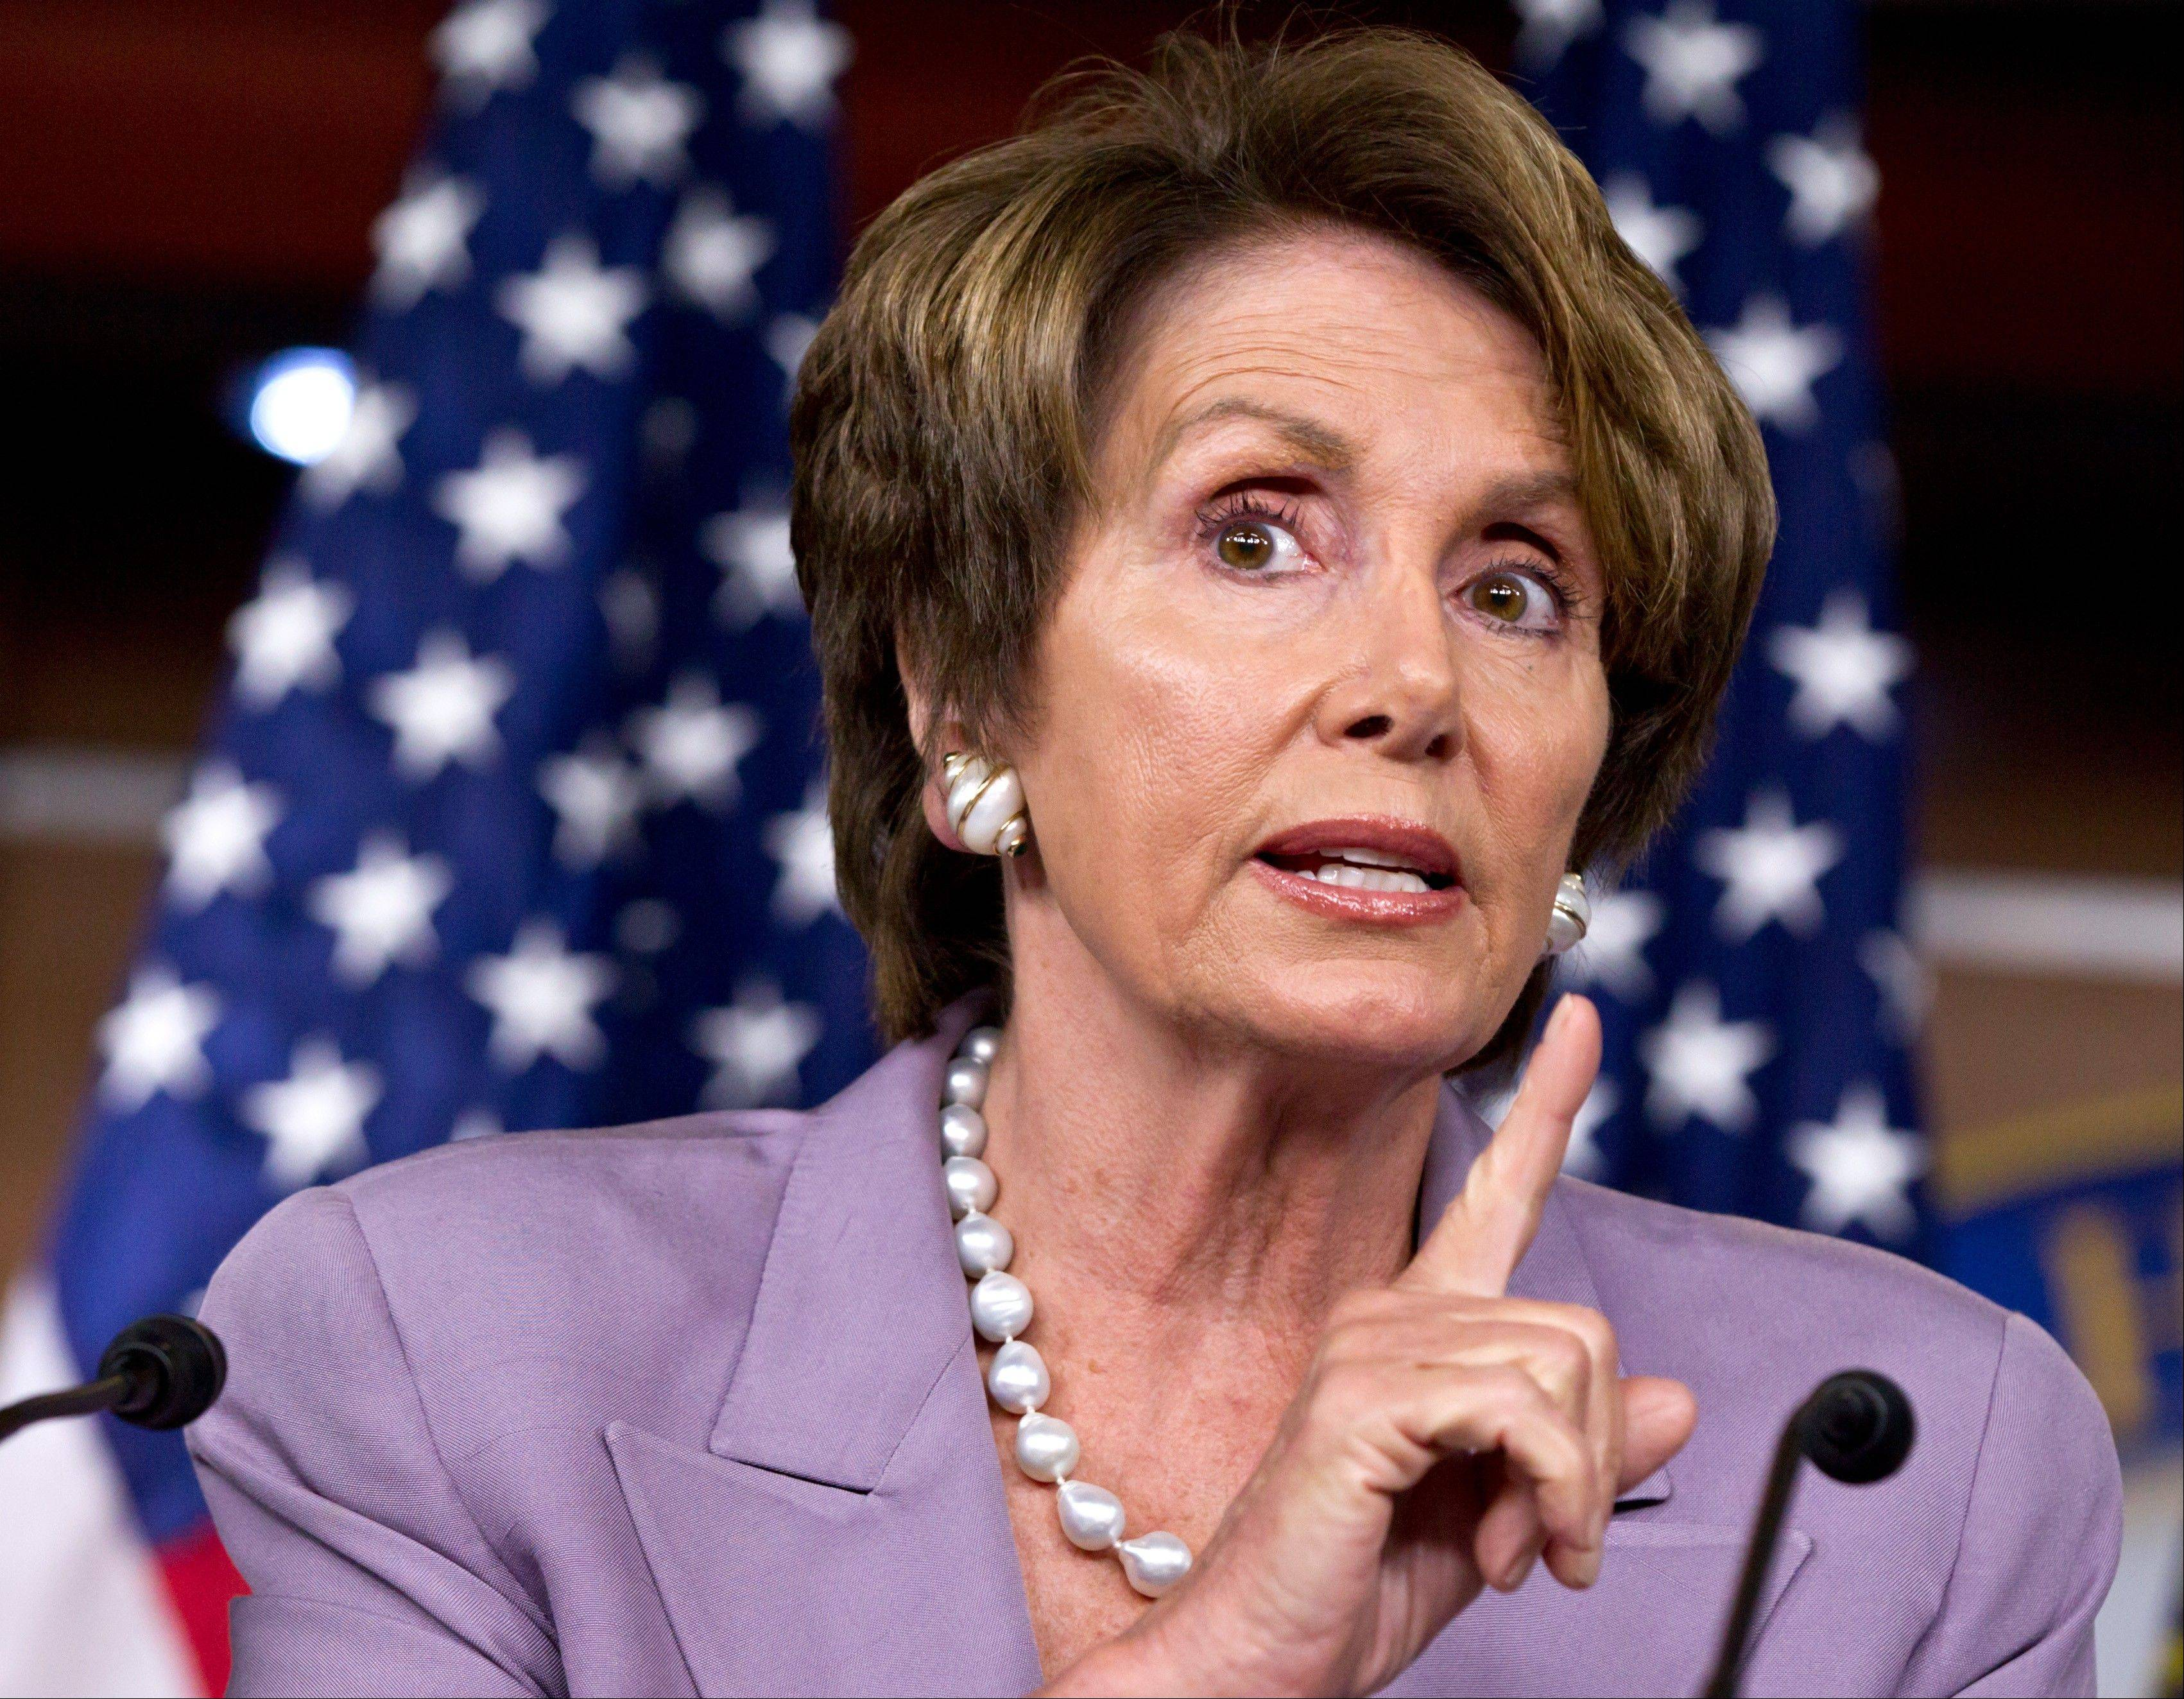 Former House speaker Nancy Pelosi said Wednesday she will run to keep her job as the Democratic leader in the House.